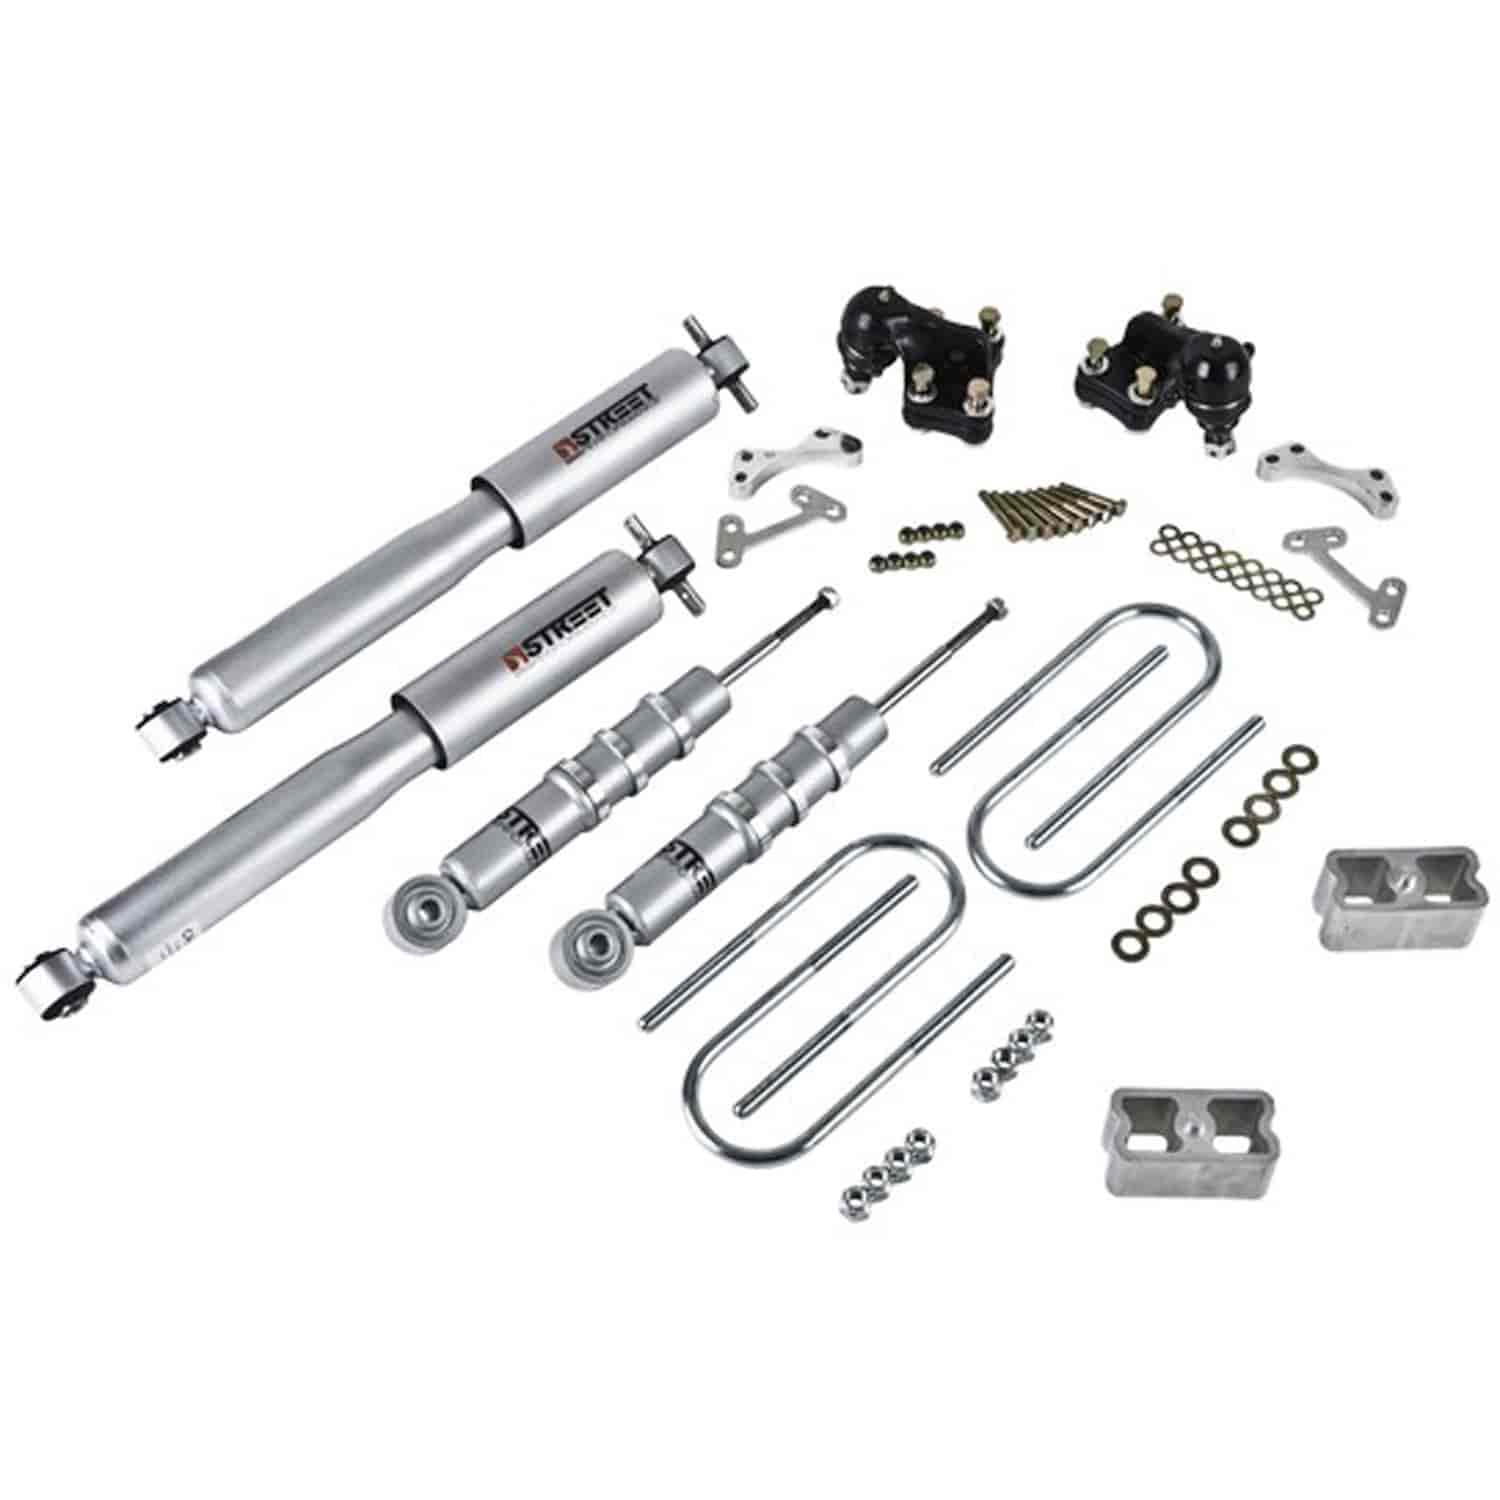 Belltech 611SP: Complete Lowering Kit for 2004-2012 Chevy